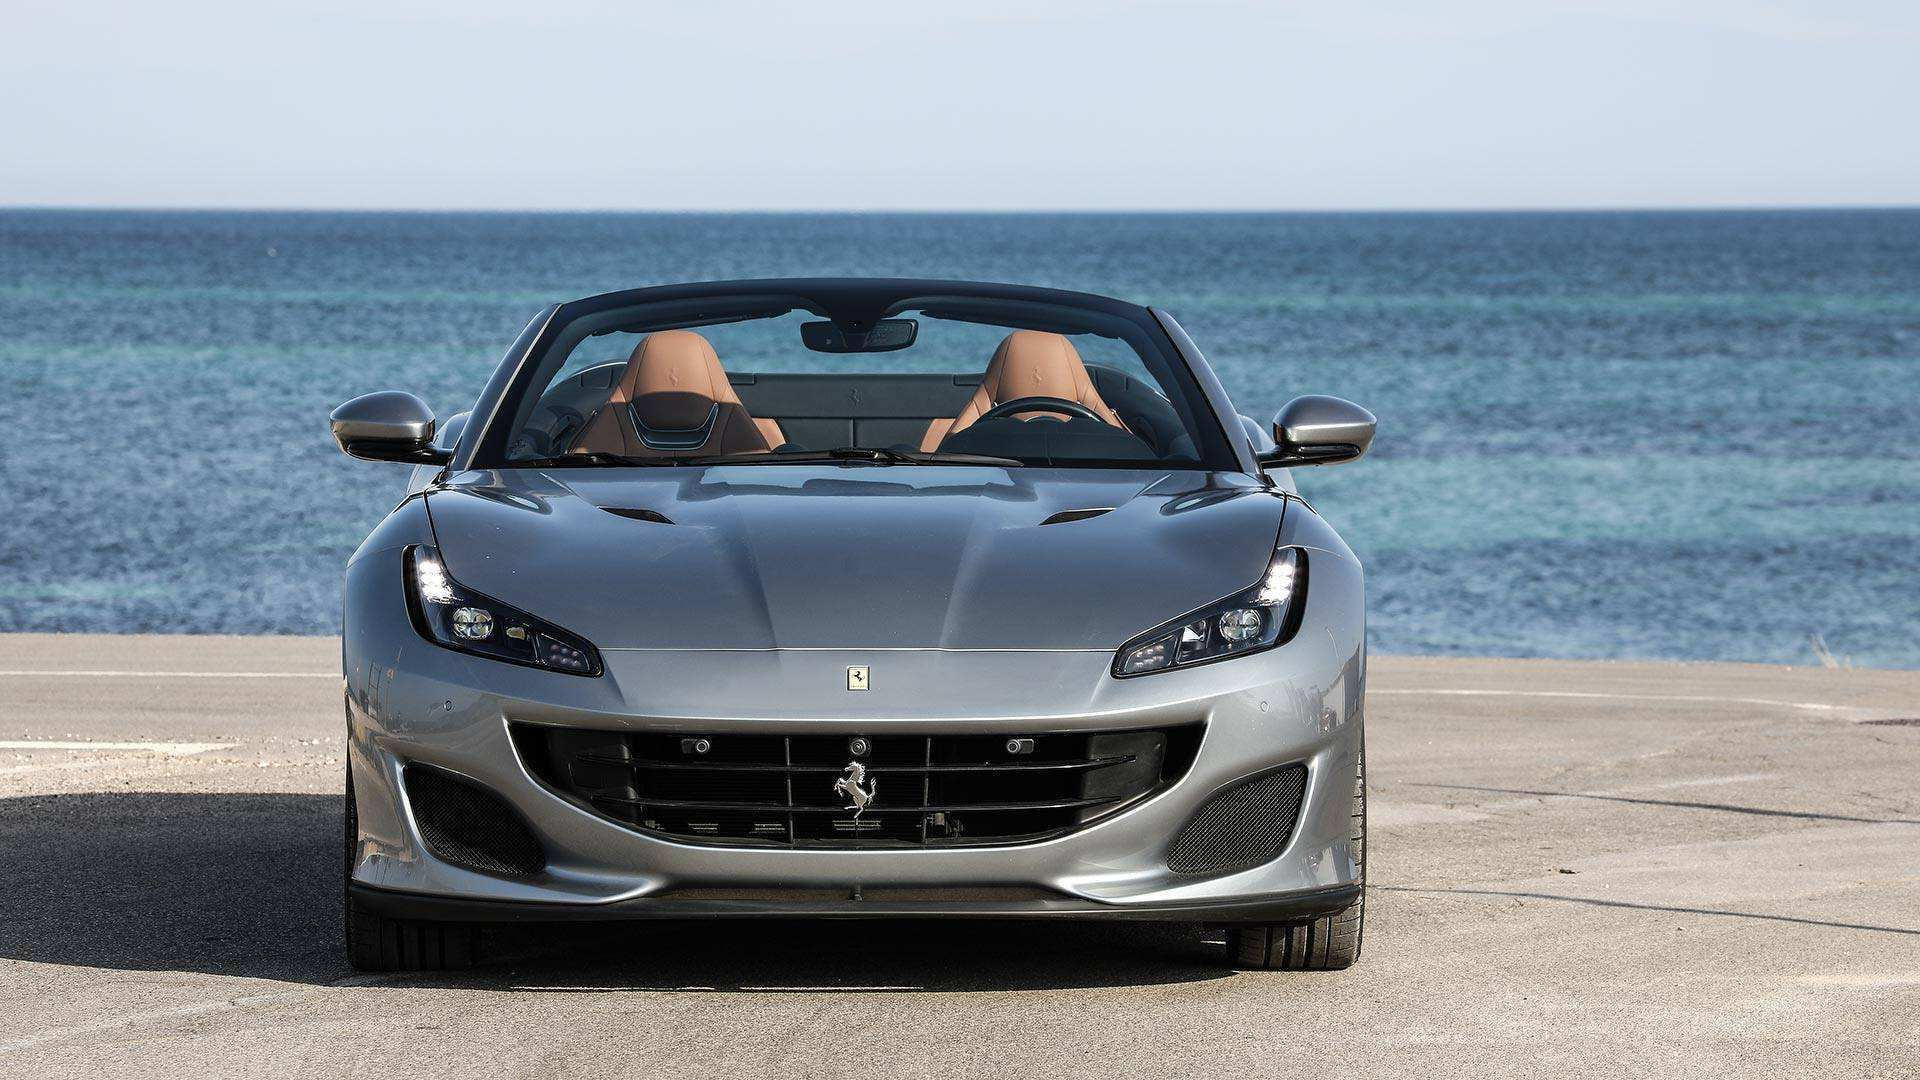 63 The Best 2019 Ferrari Cost Redesign And Concept